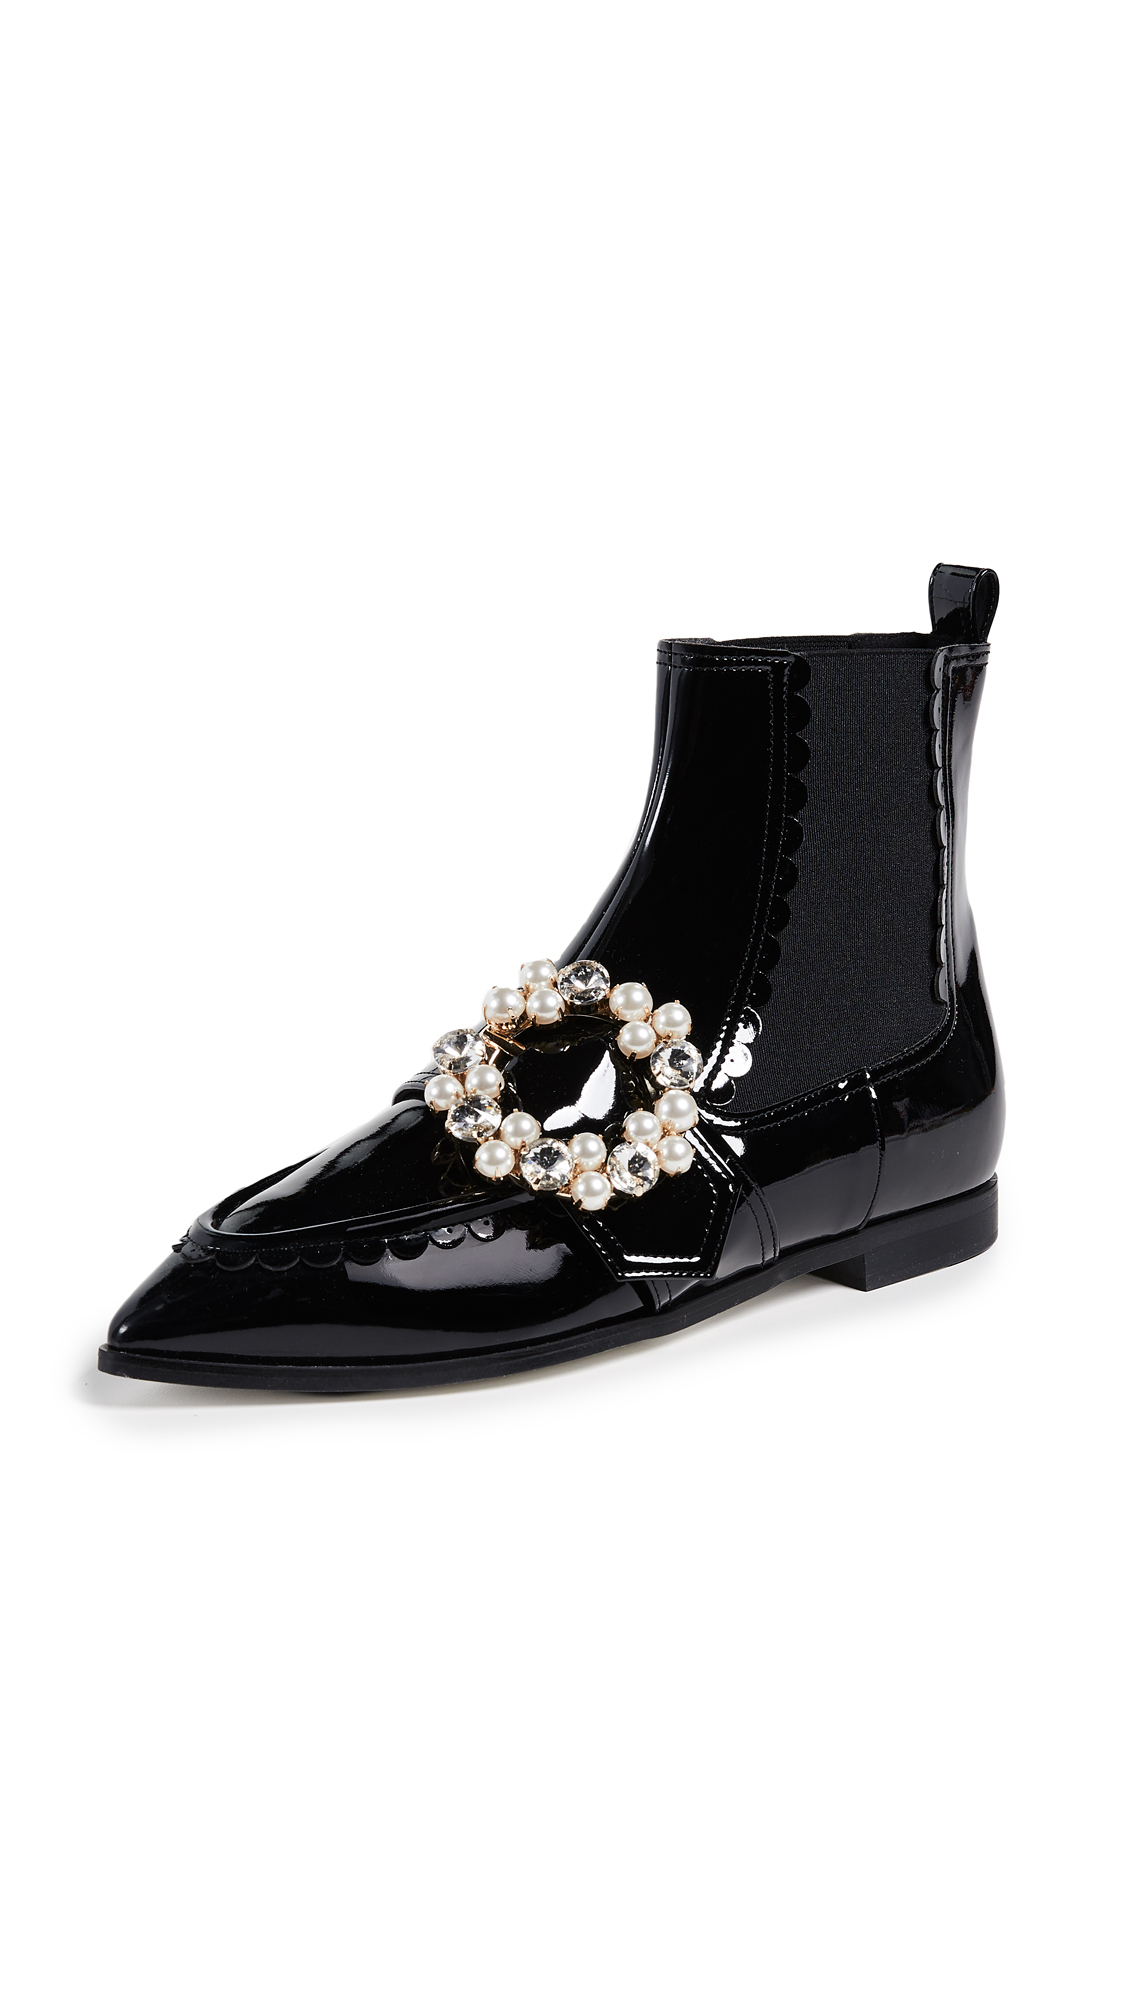 Suecomma Bonnie Jewel Pointy Ankle Booties - Black